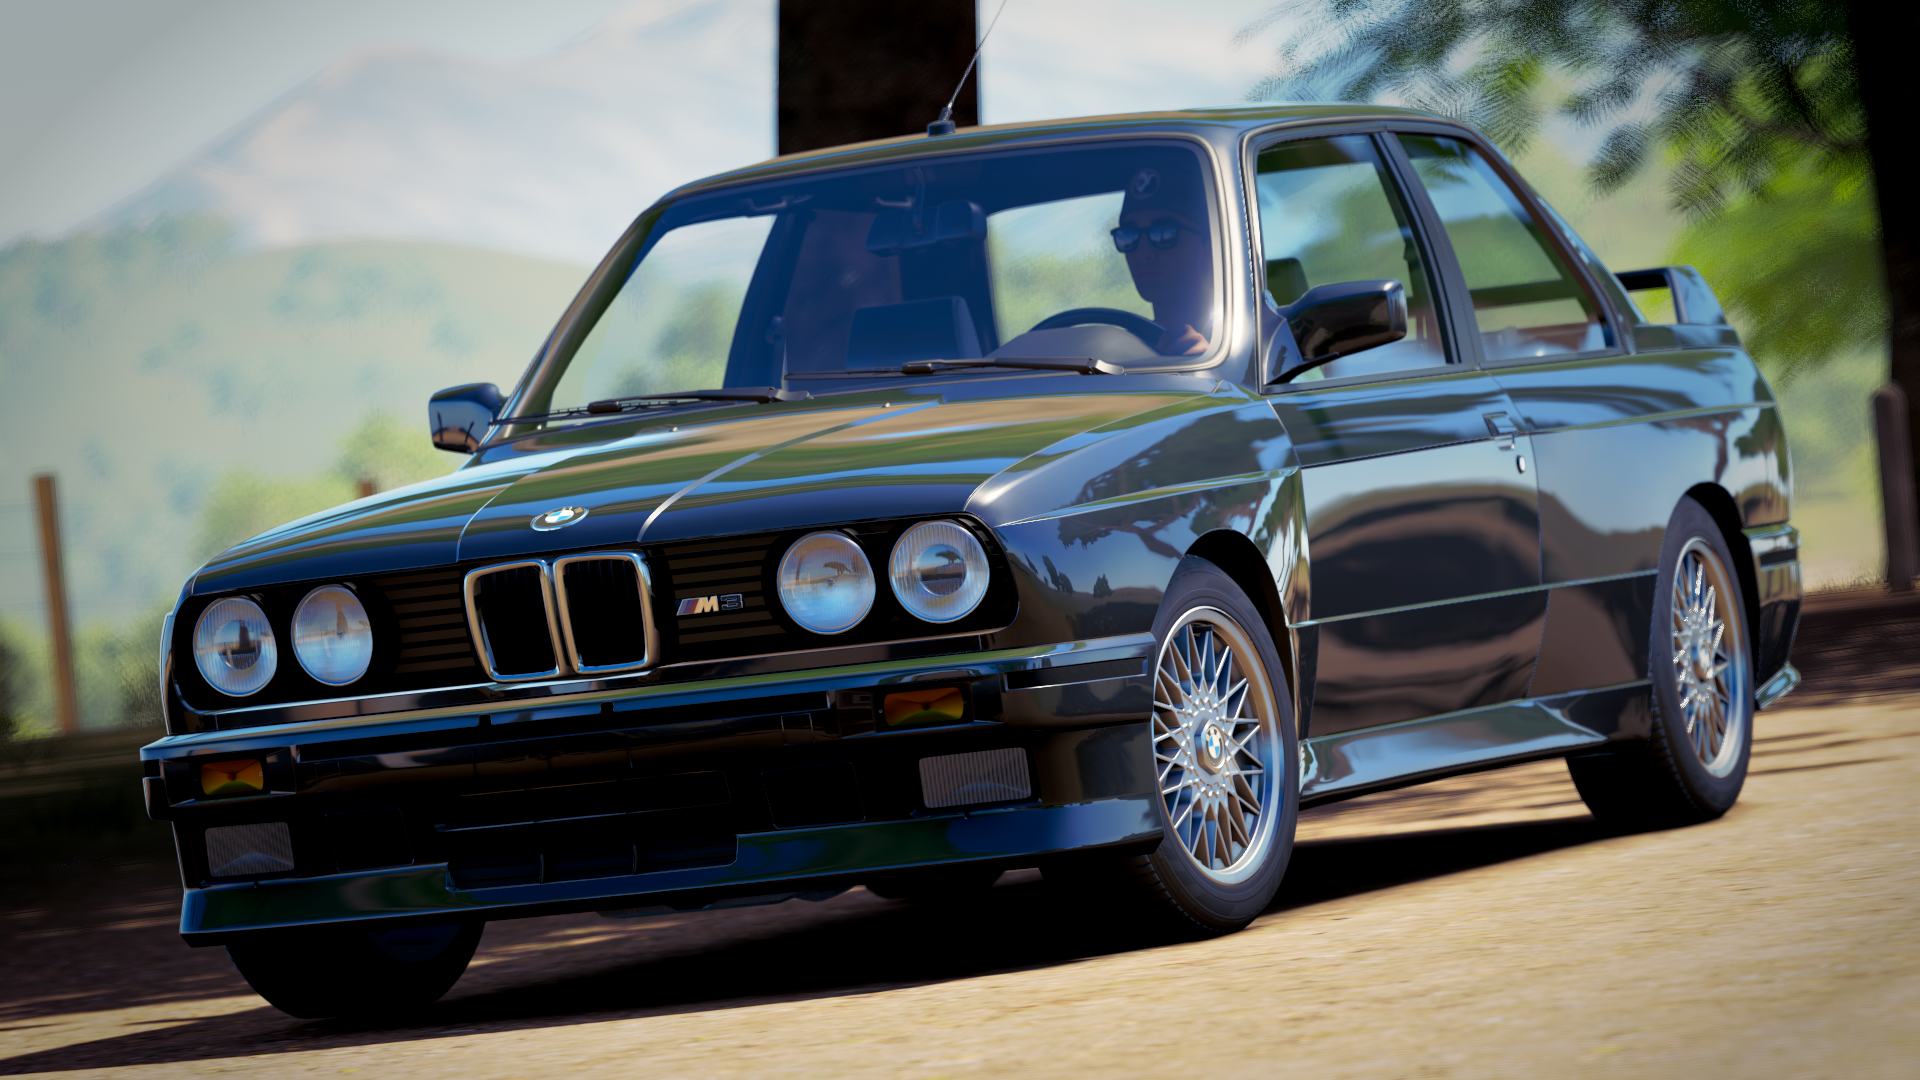 Forza Horizon Cars - 1991 bmw m3